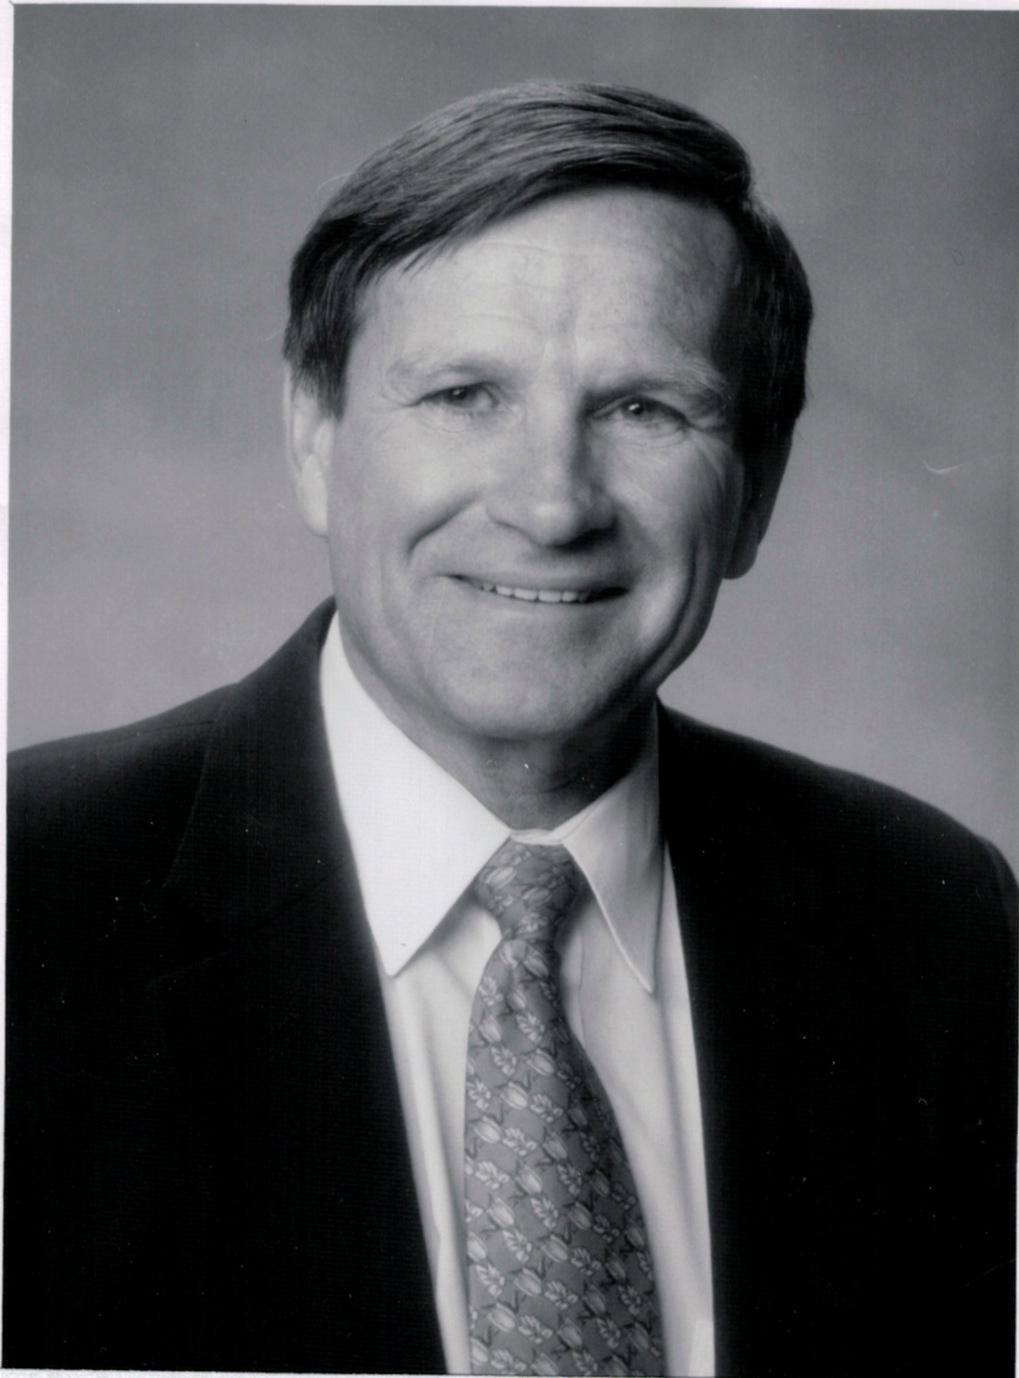 David Kelly with Springs Law Center